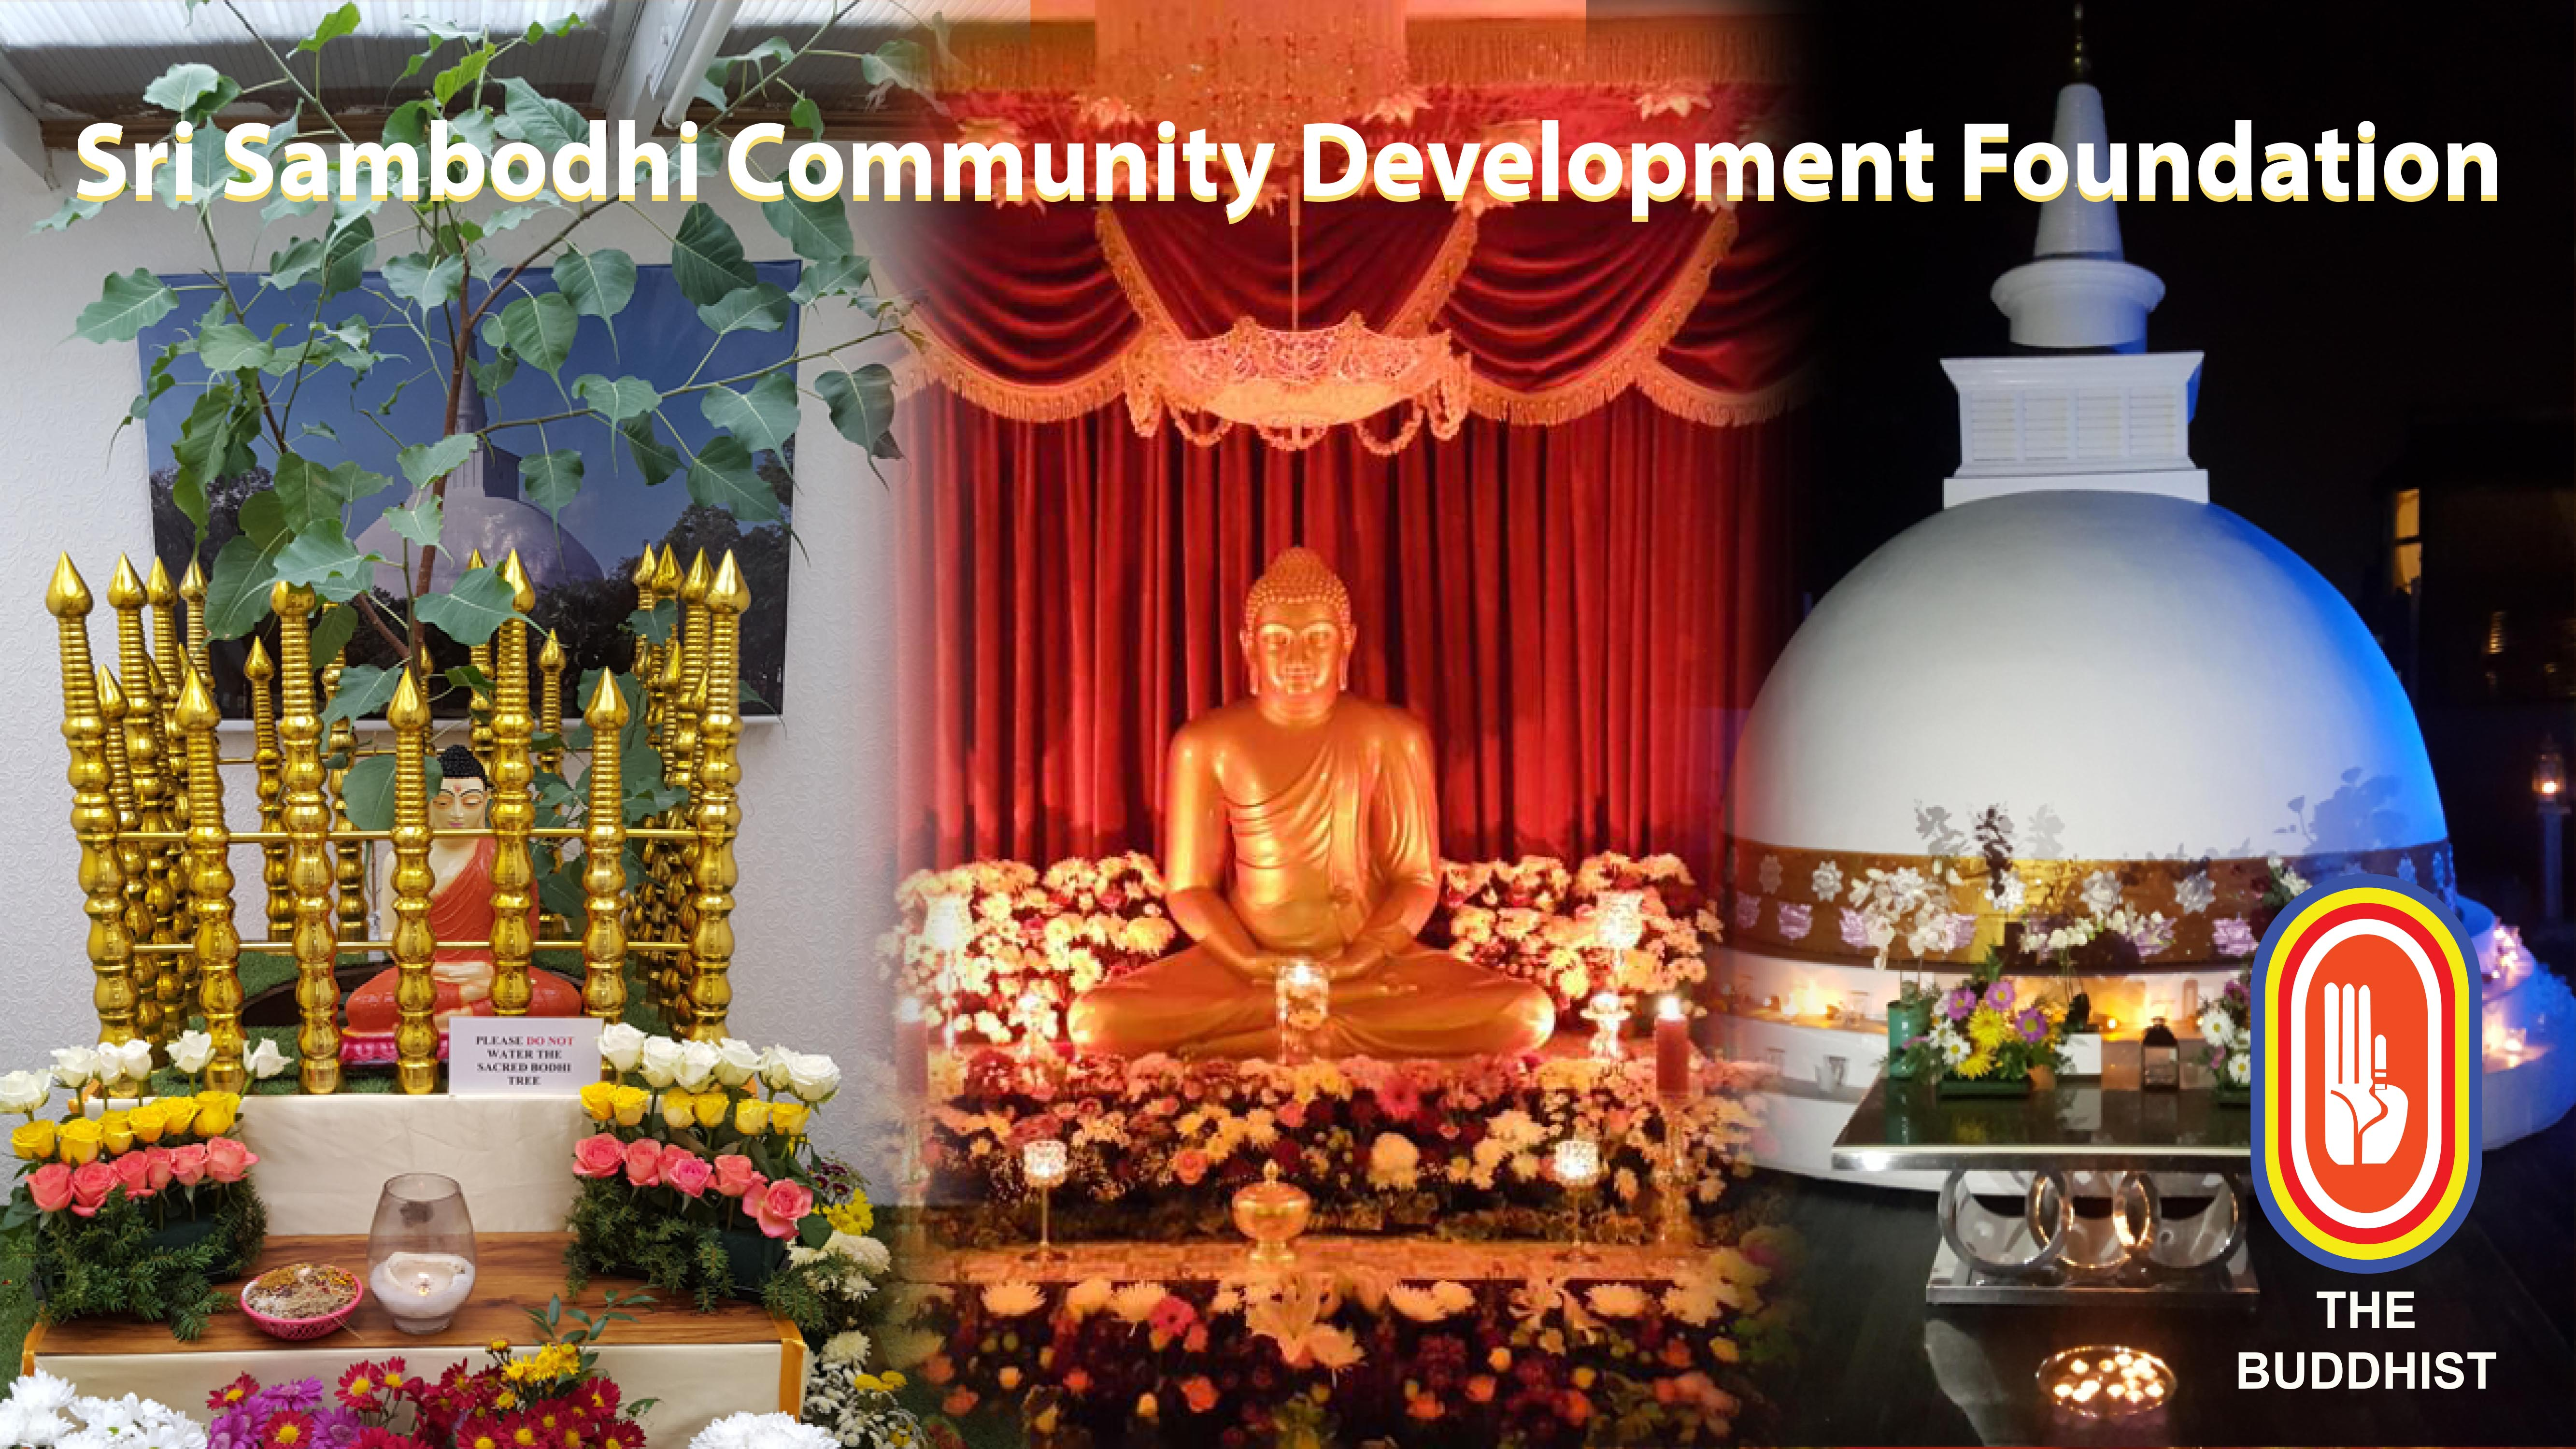 Sri Sambodhi Community Development Foundation